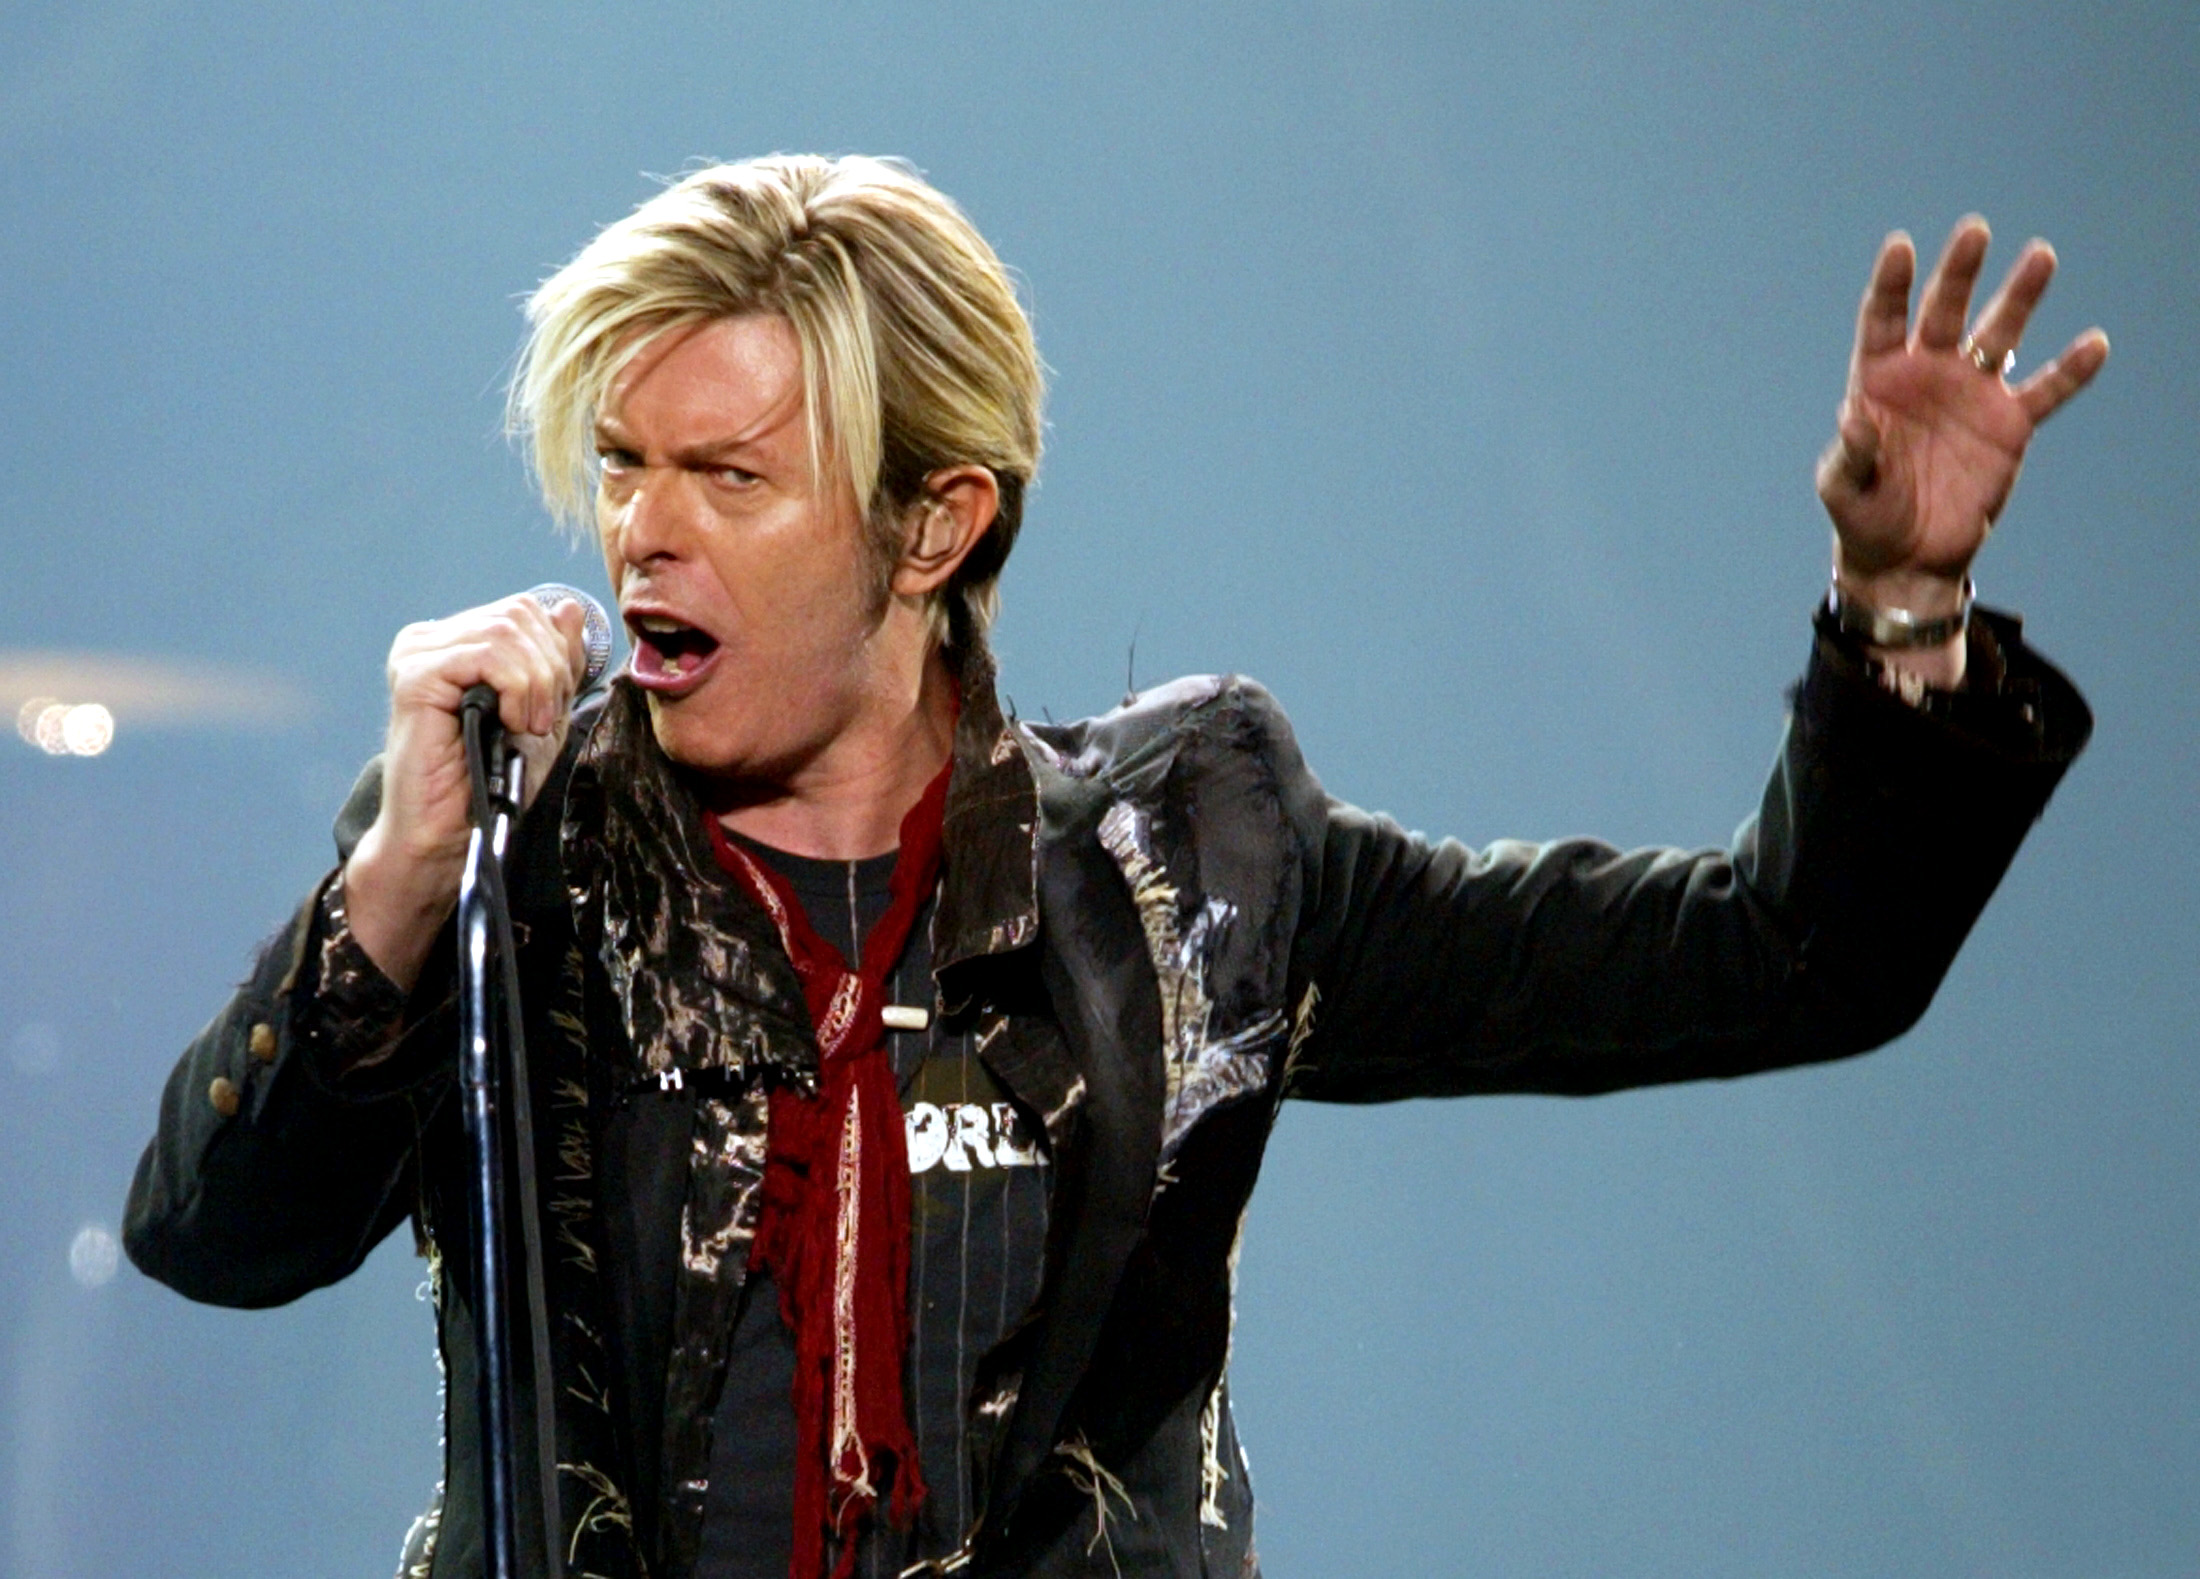 """David Bowie performs his North American debut of """"A Reality Tour"""" in Montreal, December 13, 2003. Bowie kicked off his first North American concert series in eight years after battling the flu for a week and canceling several shows. - RTXMC73"""